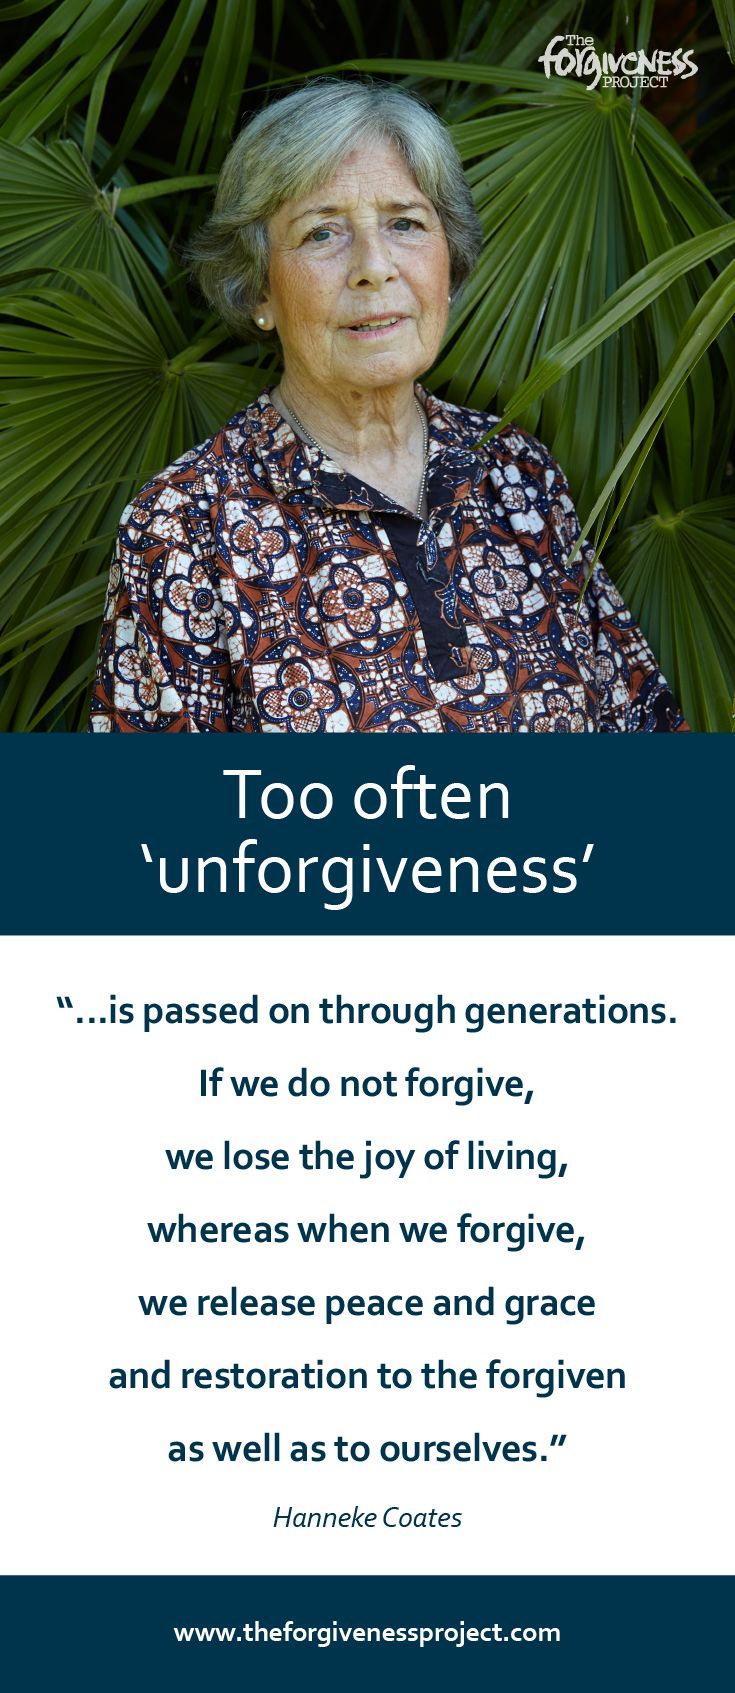 """""""Too often 'unforgiveness' is passed on through generations. If we do not forgive, we lose the joy of living, whereas when we forgive, we release peace and grace and restoration to the forgiven as well as to ourselves."""" - Hanneke Coates. Read Hanneke's whole story here: http://theforgivenessproject.com/stories/hanneke-coates-england/"""